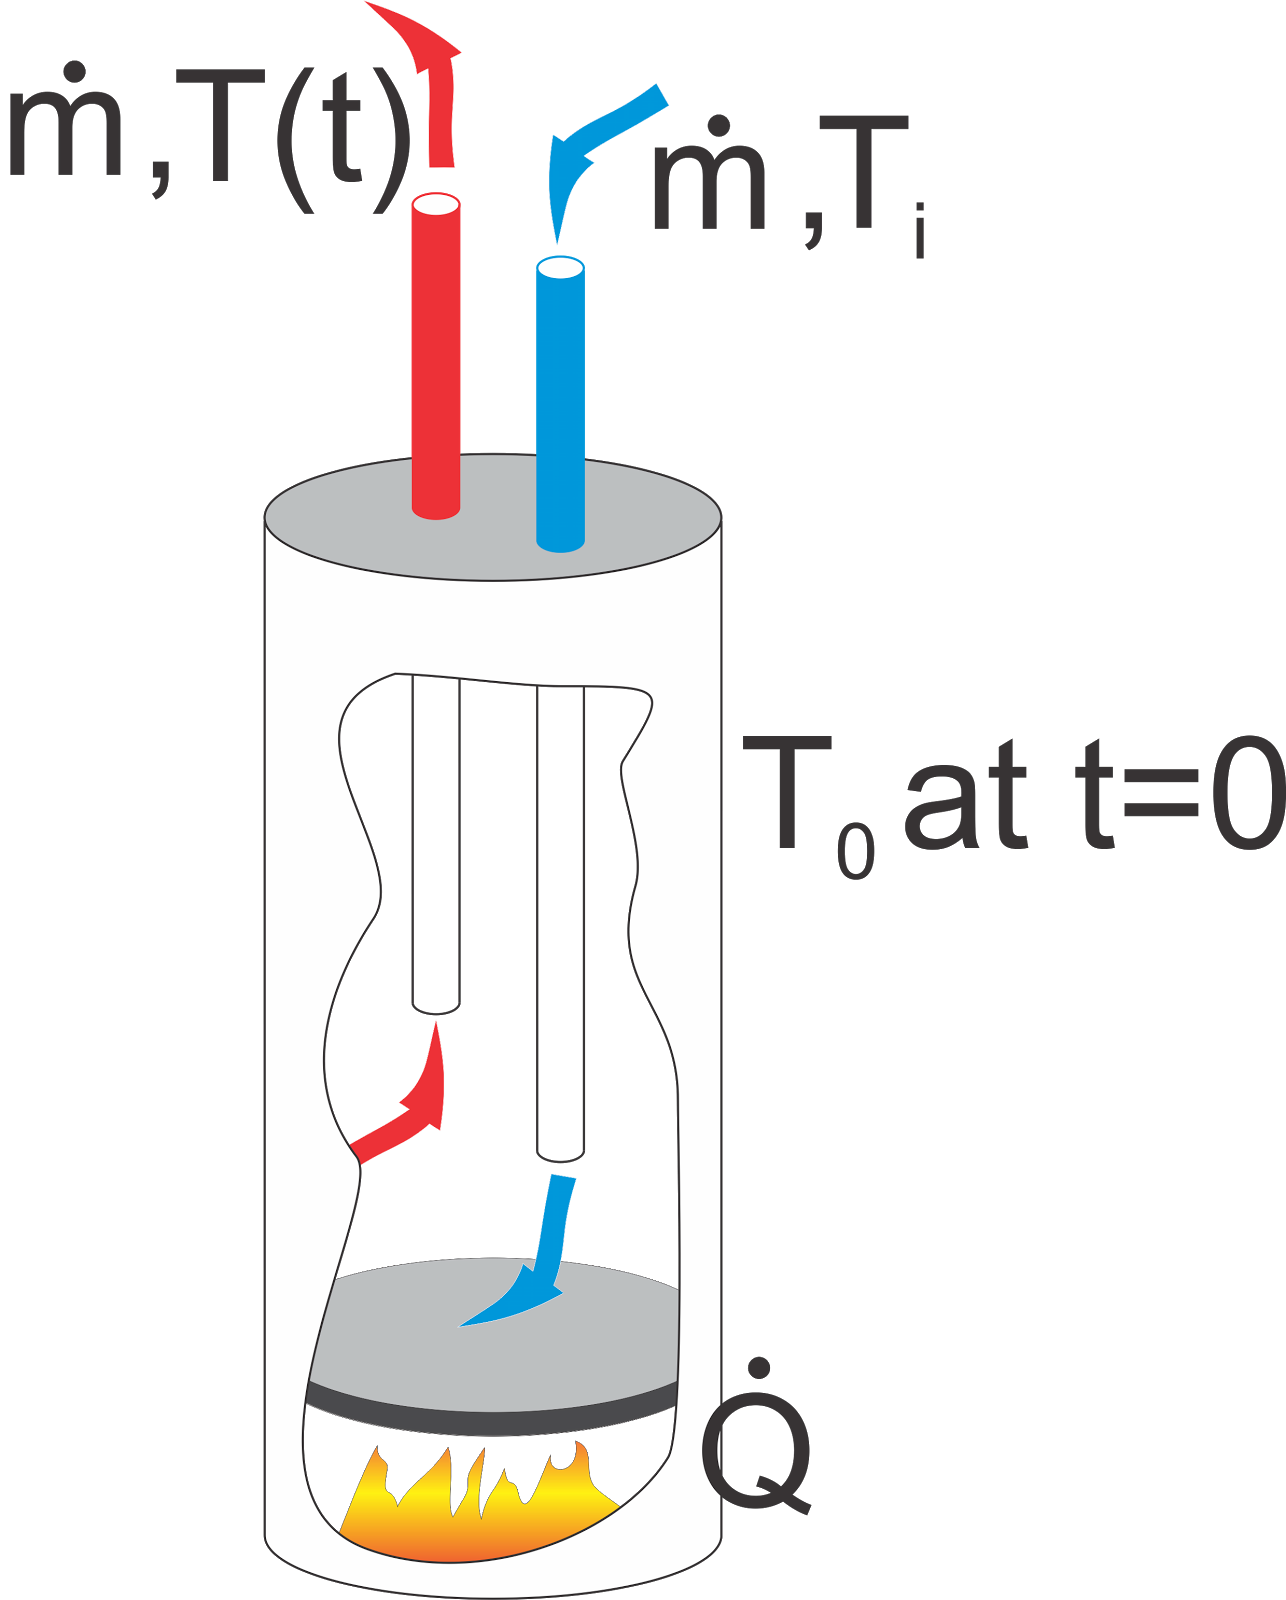 Evaporation clipart thermodynamics. Heat transfer and applied